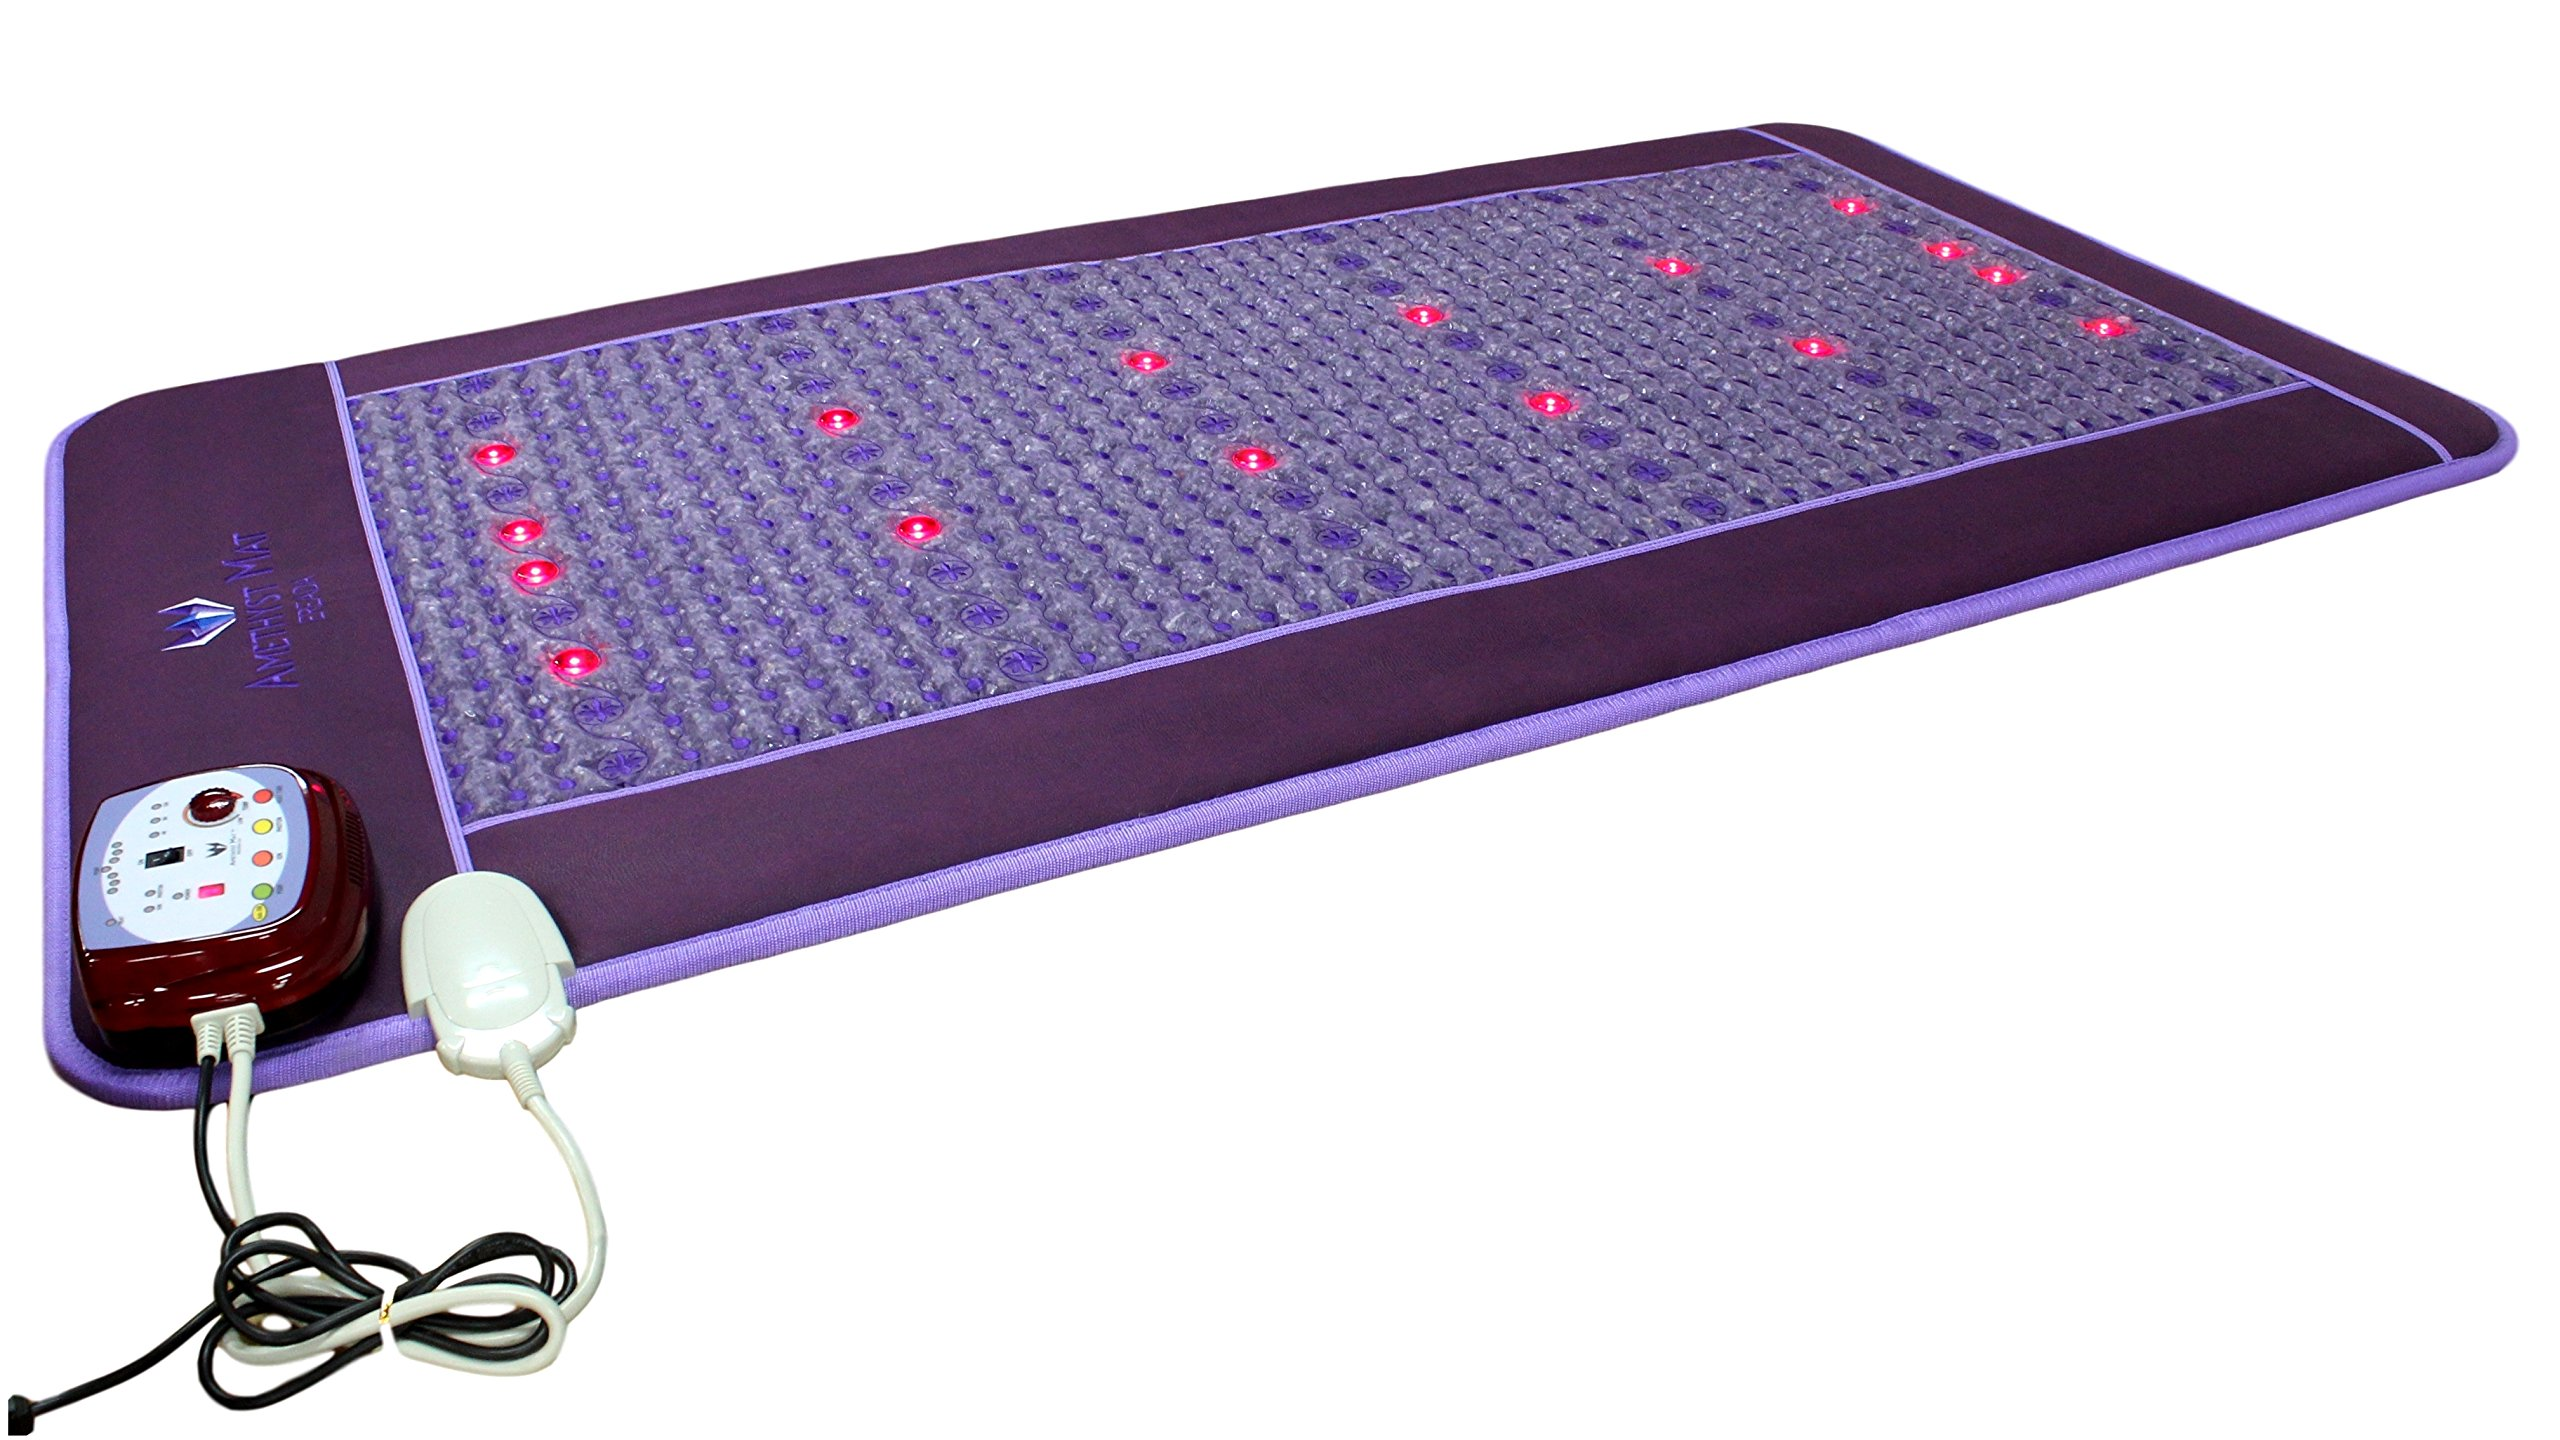 Far Infrared Amethyst Mat - FIR Heat - Bio Magnetic Field - PEMF - Negative Ions - Red Light Photon Therapy - Natural Amethyst - FDA Registered Korean Manufacturer - Purple (Single (XL) 75''L x 39''W)